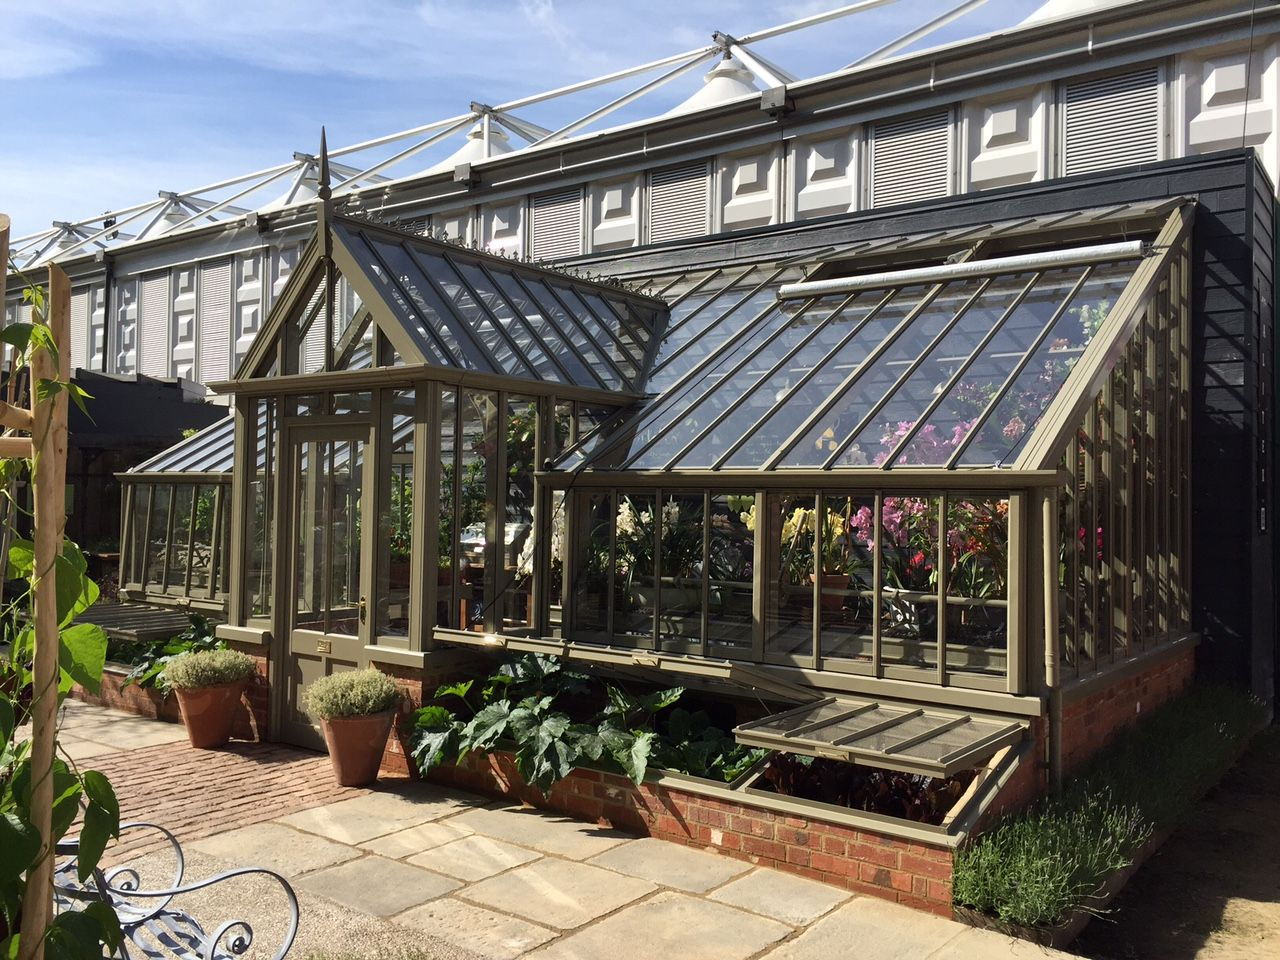 RHS Chelsea 2015. Our largest ever Chelsea structure. A bespoke, mono-pitch, lean-to greenhouse in Green Sand. With Sentry style feature lobby and new cold frames.